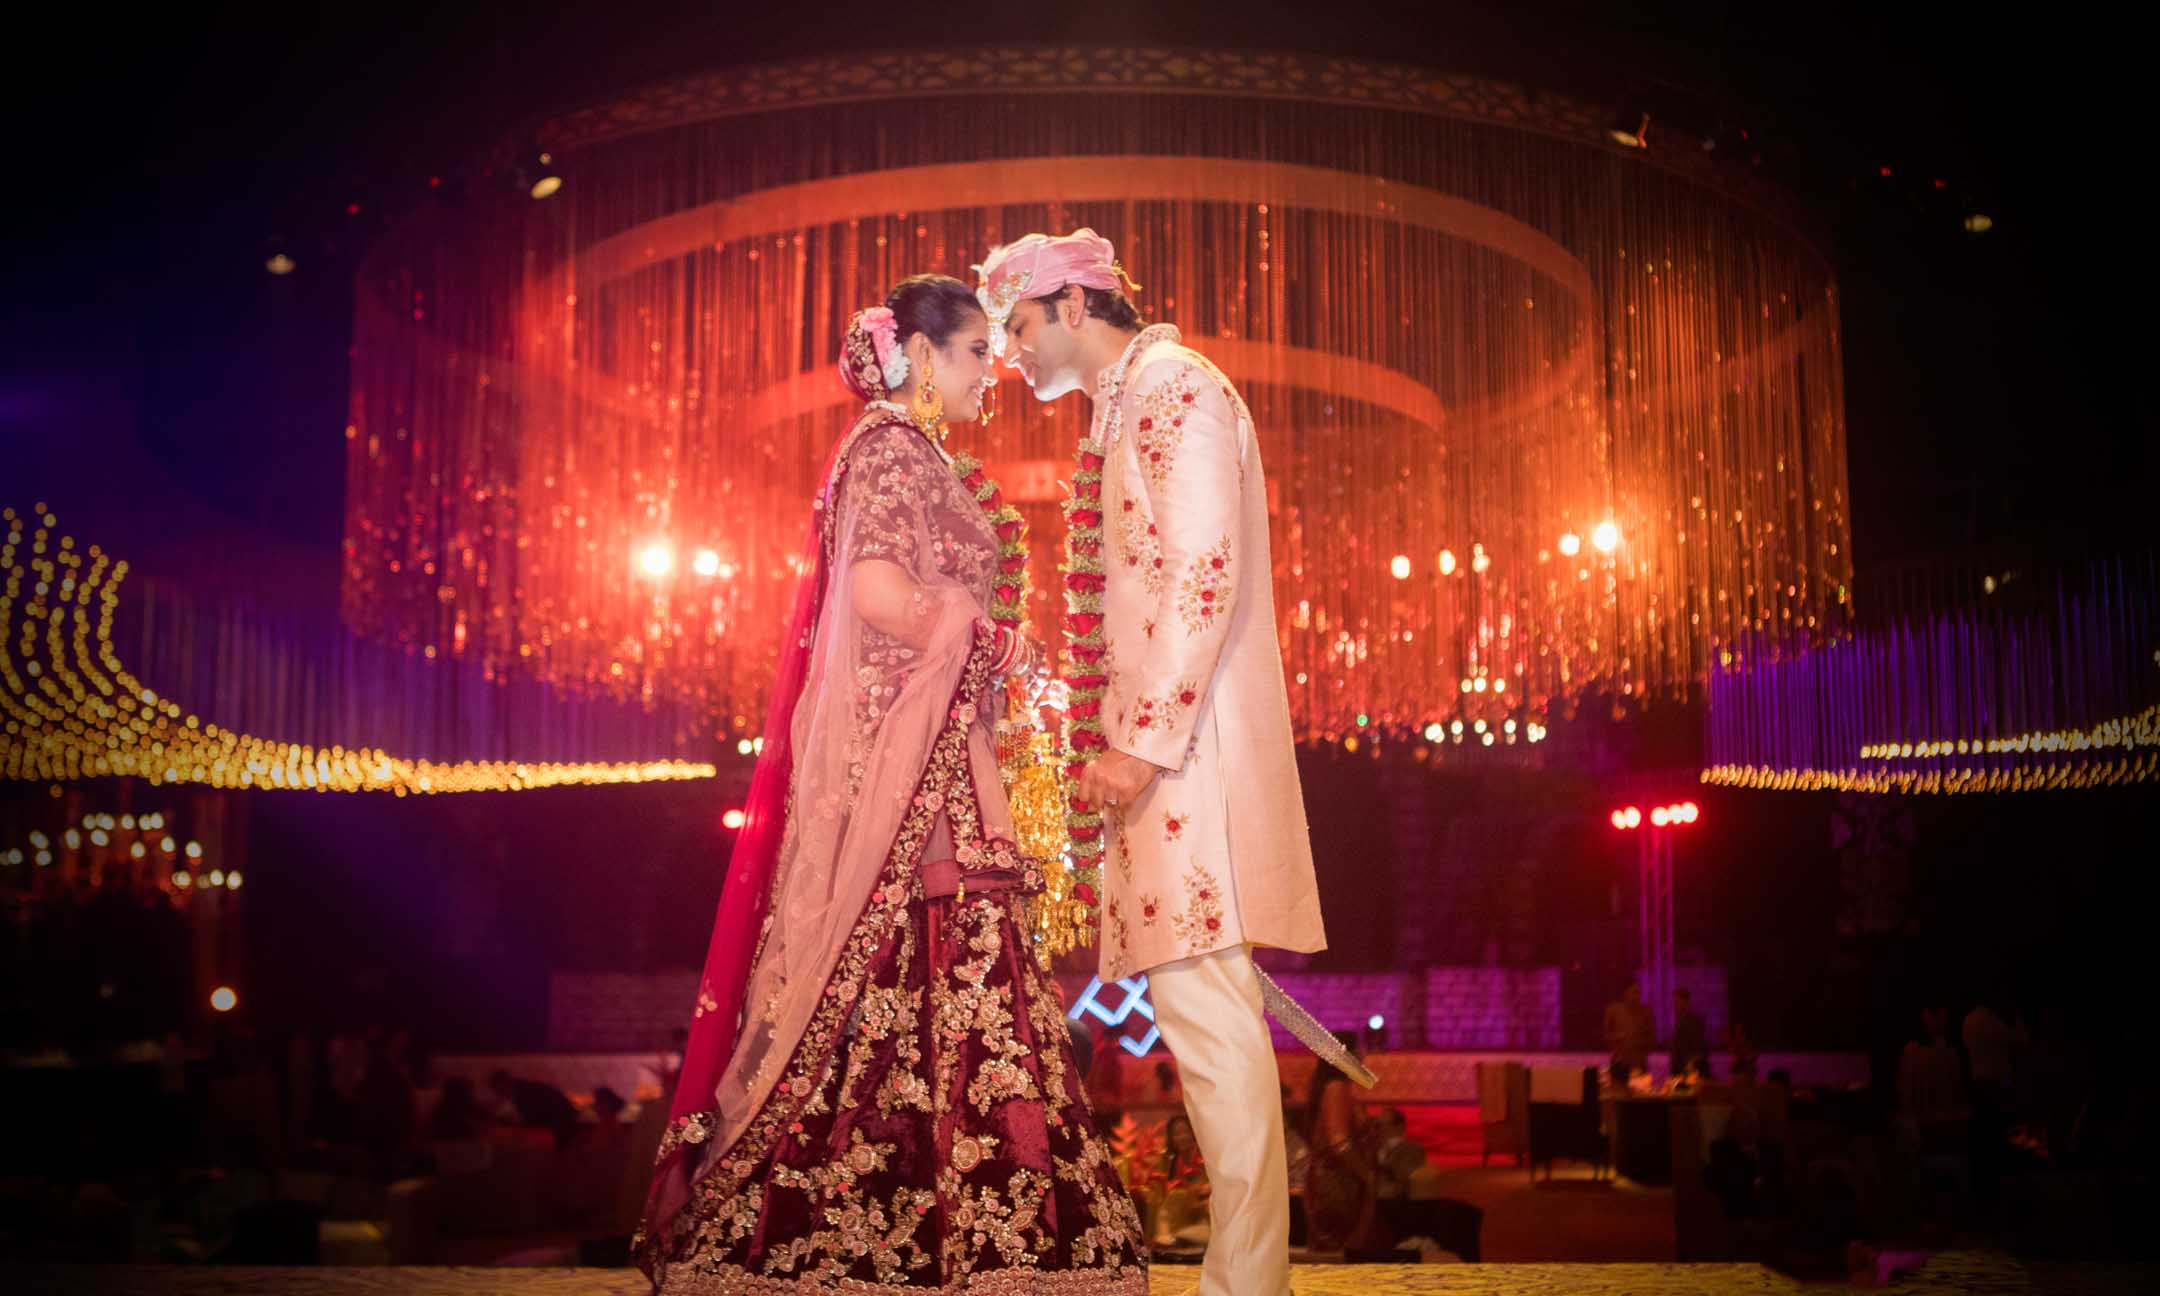 wedding photography packages delhi